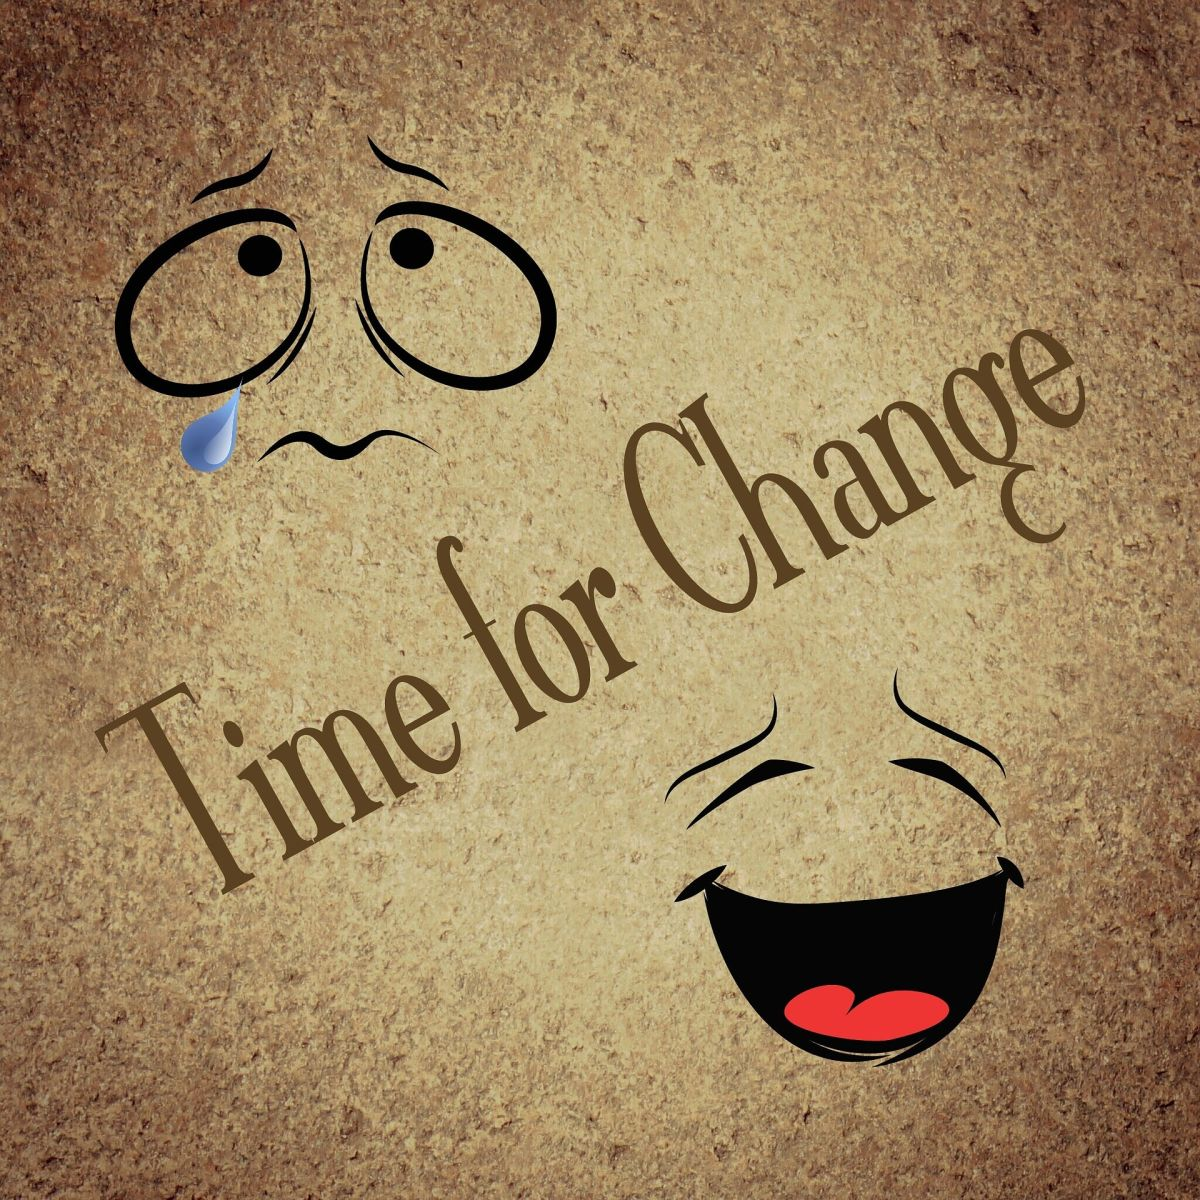 Time for change, sad, cheerful, smile, cry, yin, yang